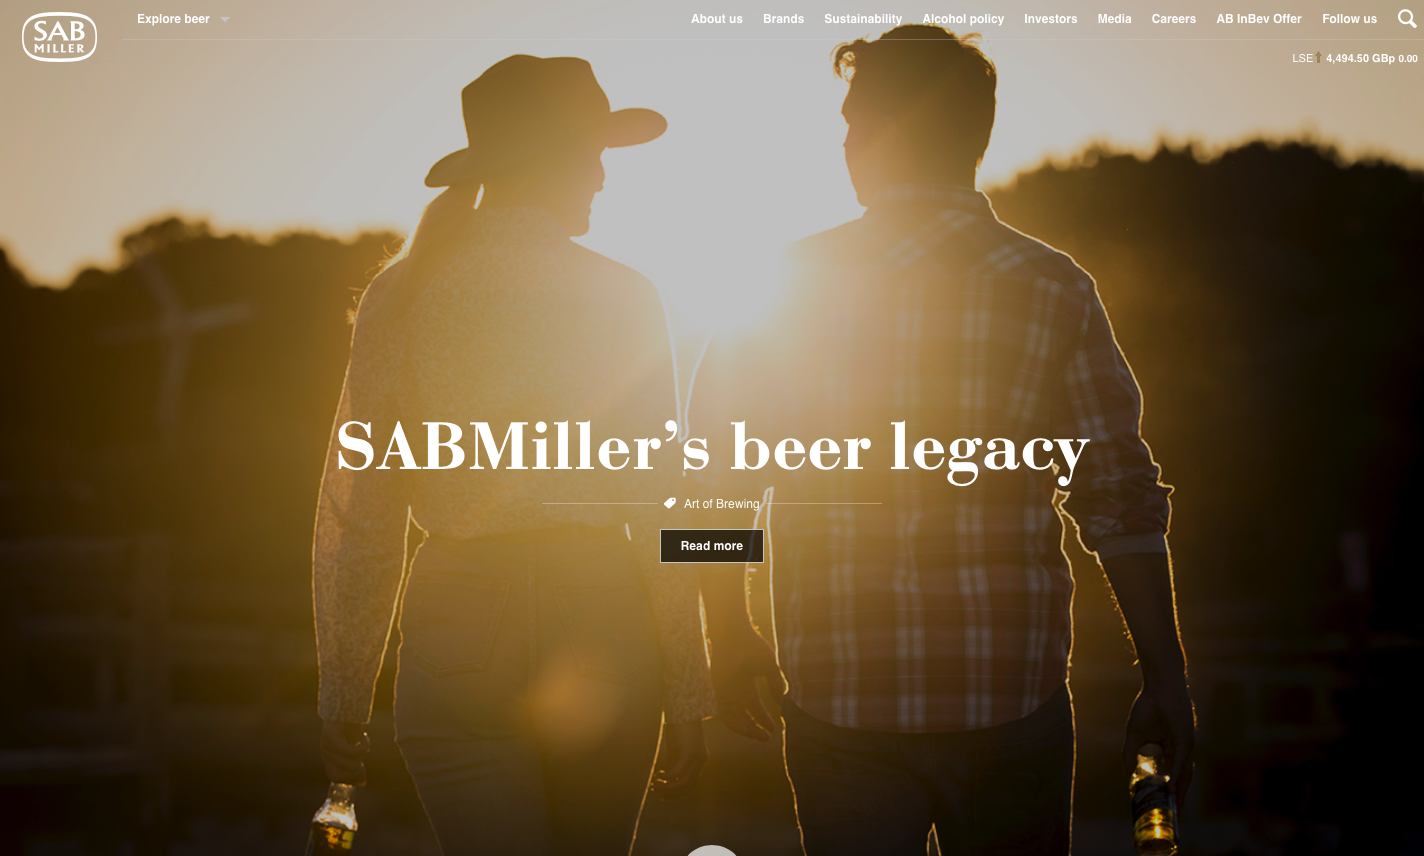 SABMiller's home page during its last week as an independent company